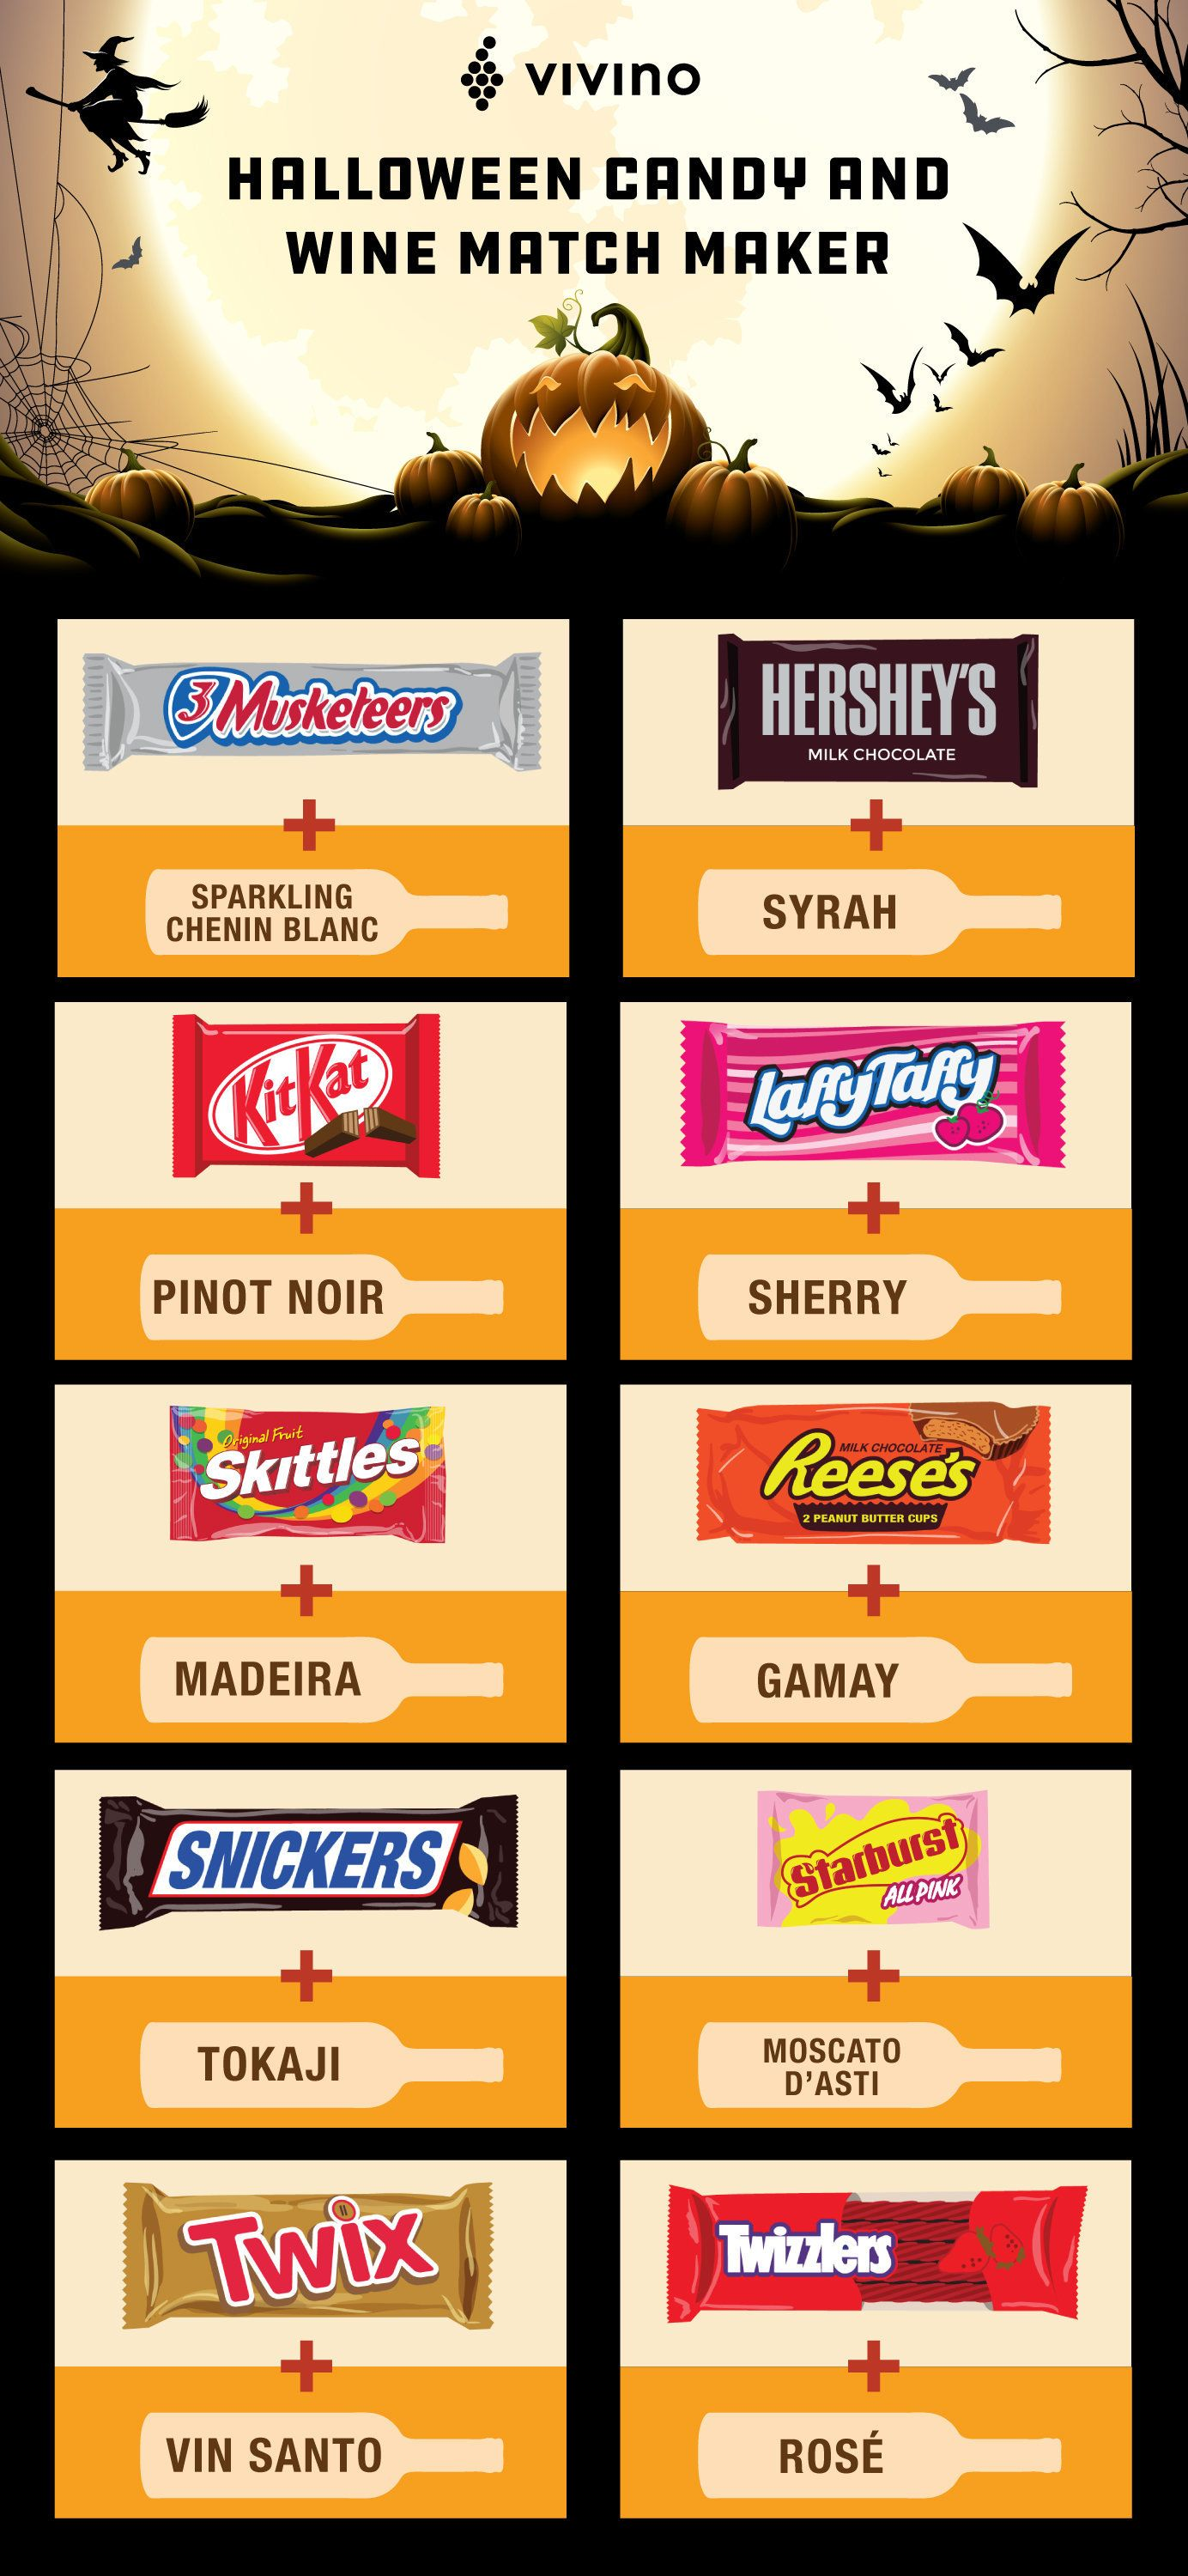 Best Wines to Pair With Your Halloween Candy